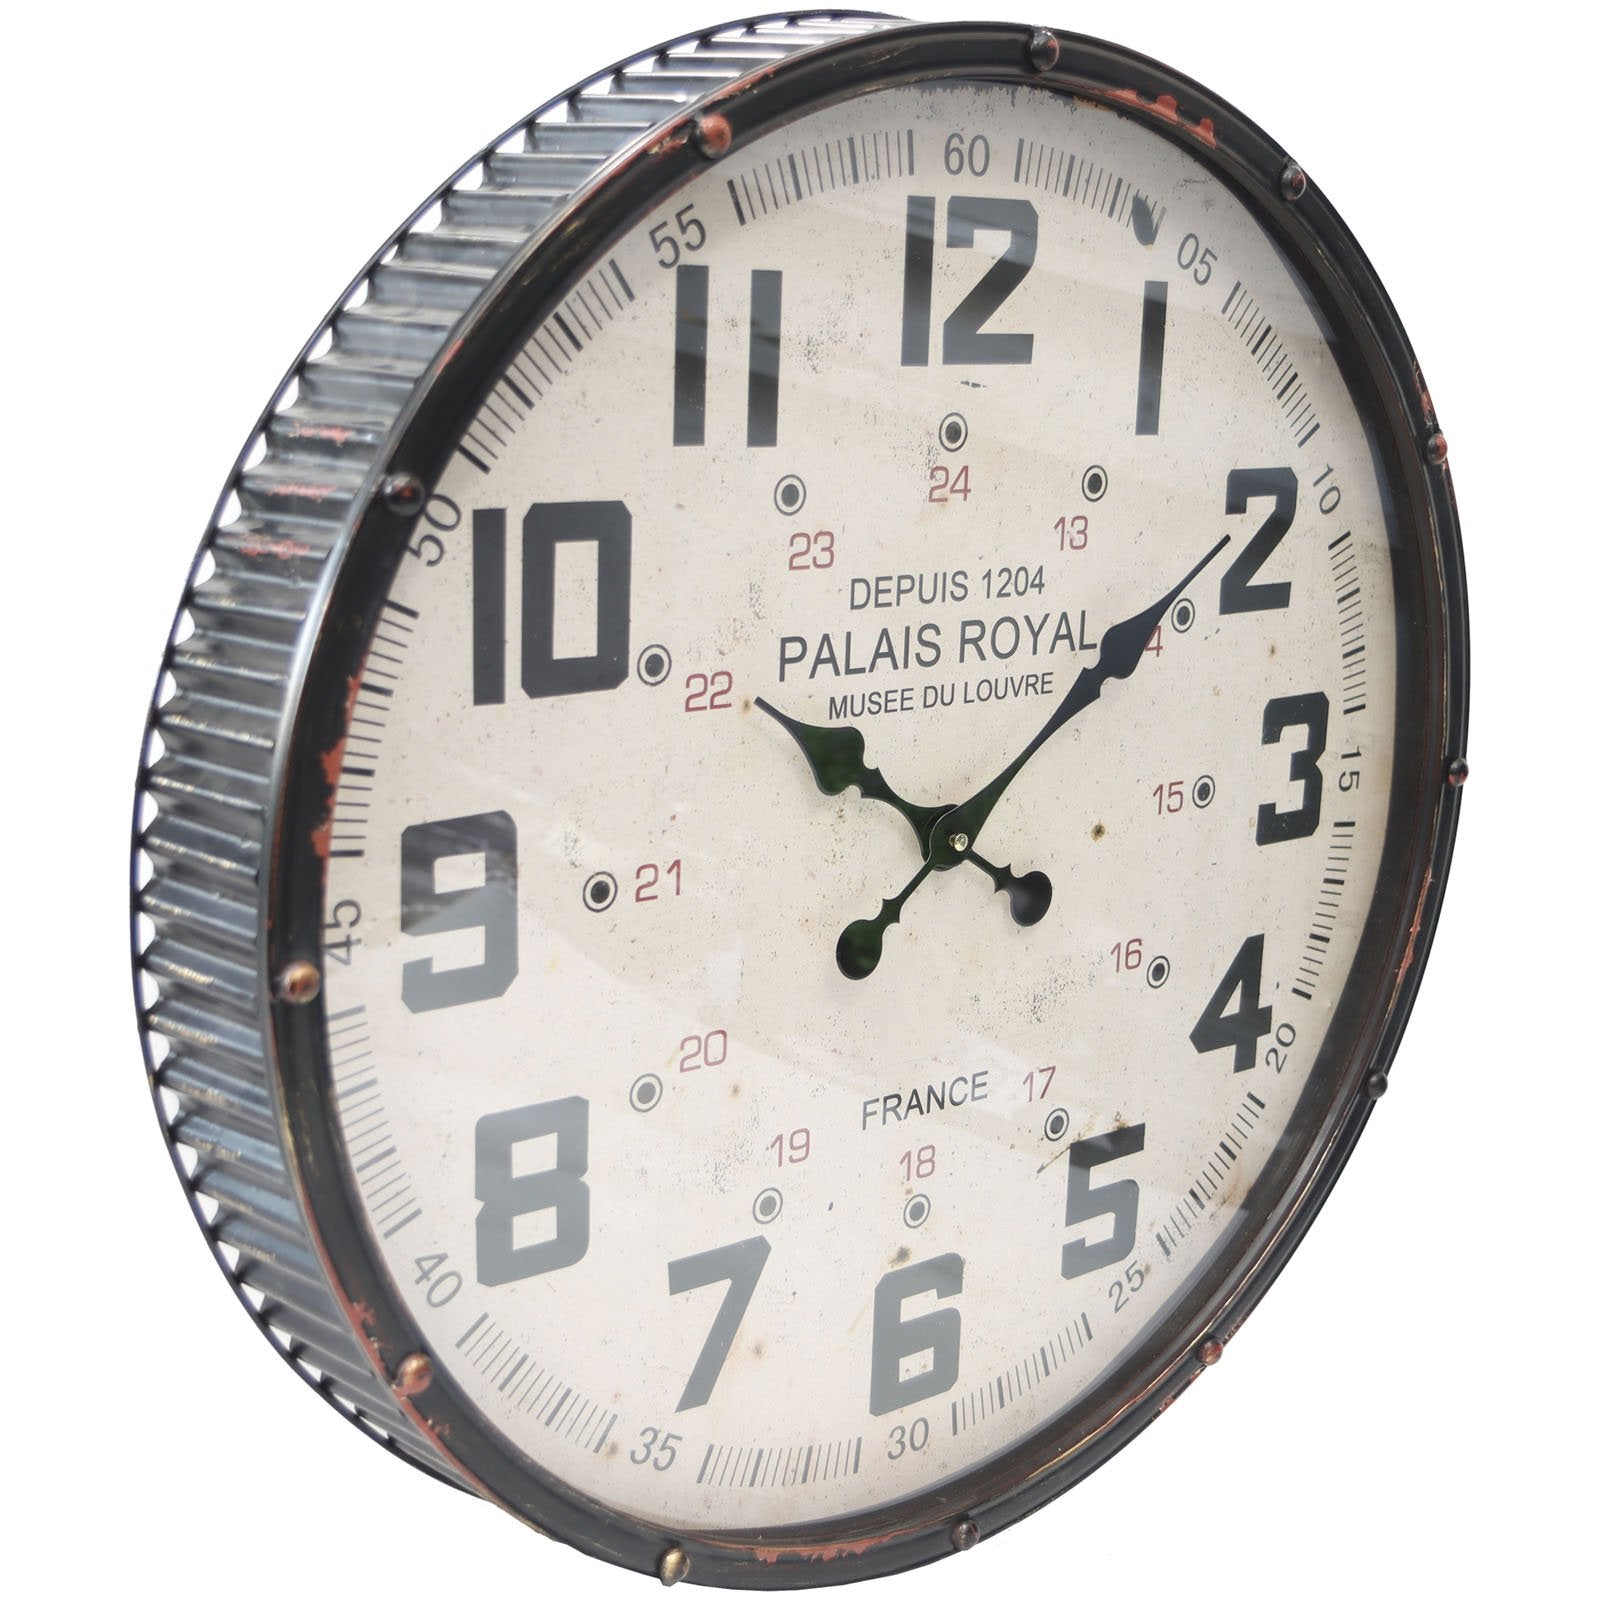 Yearn Vintage Palais Royal Metal Wall Clock Black 61cm 24328CLK 1